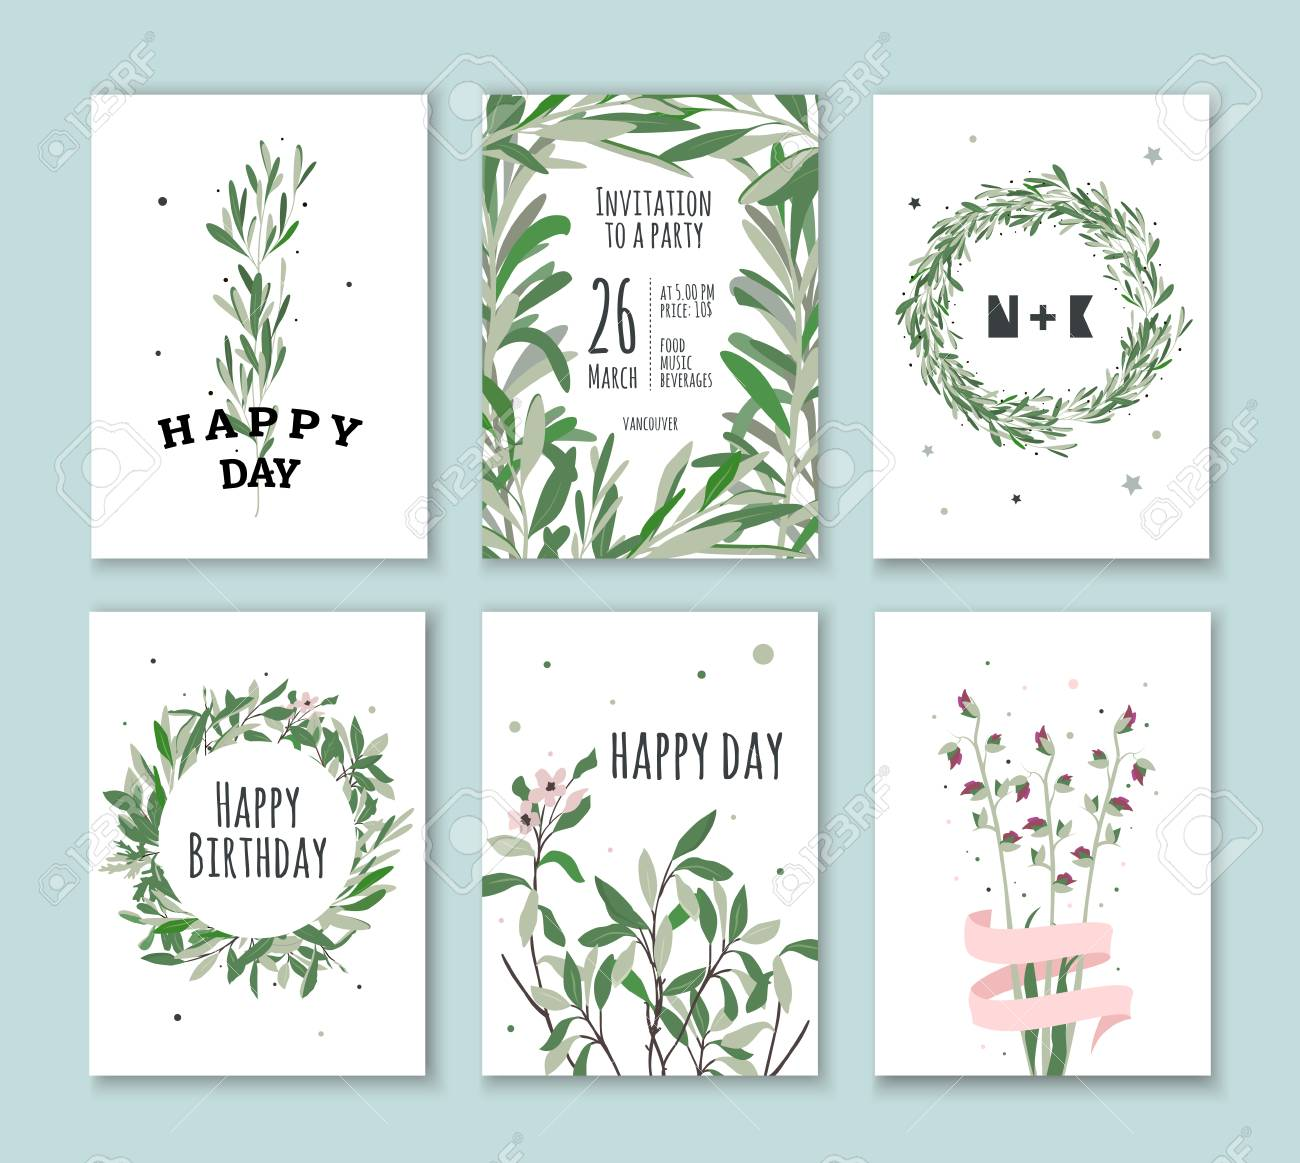 Set Invitation With Green Plants Cards For Birthdays Holidays